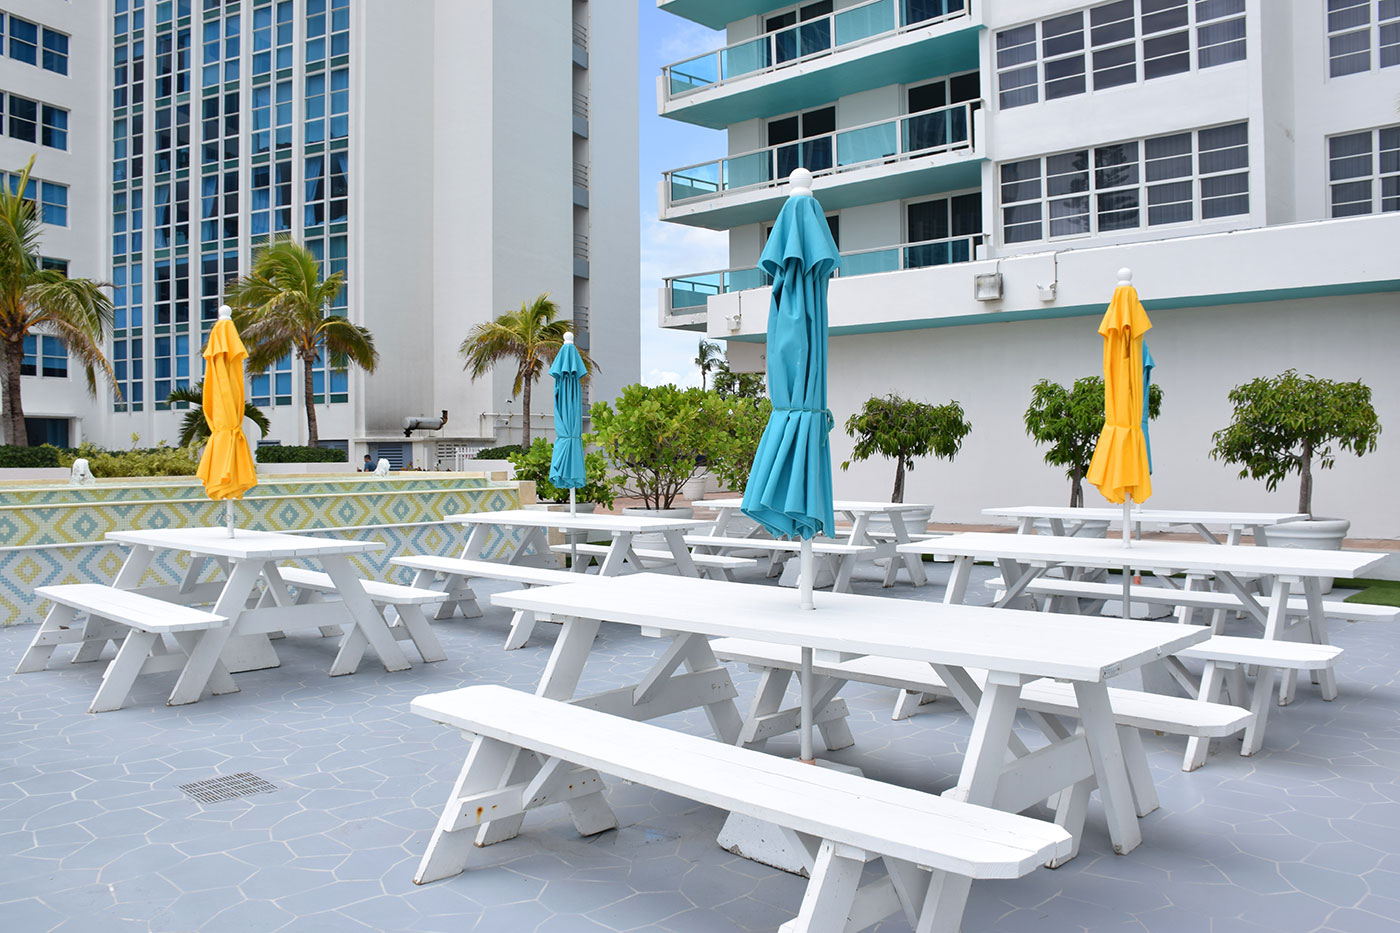 Outdoor dining area at Seacoast Suites